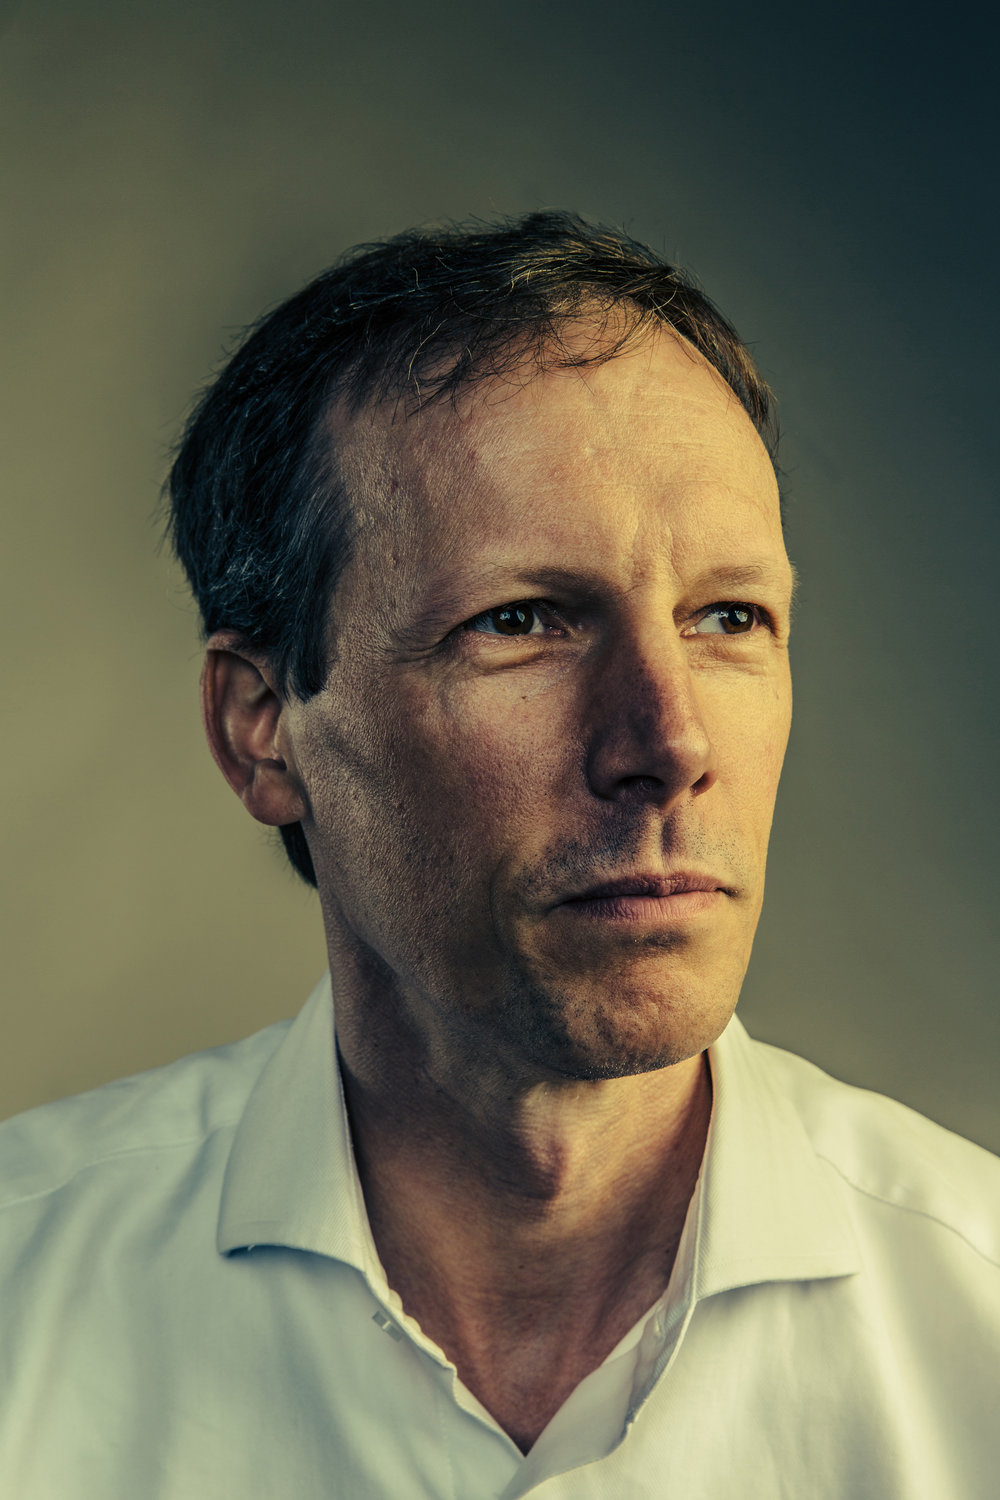 Square Co-founder Jim McKelvey